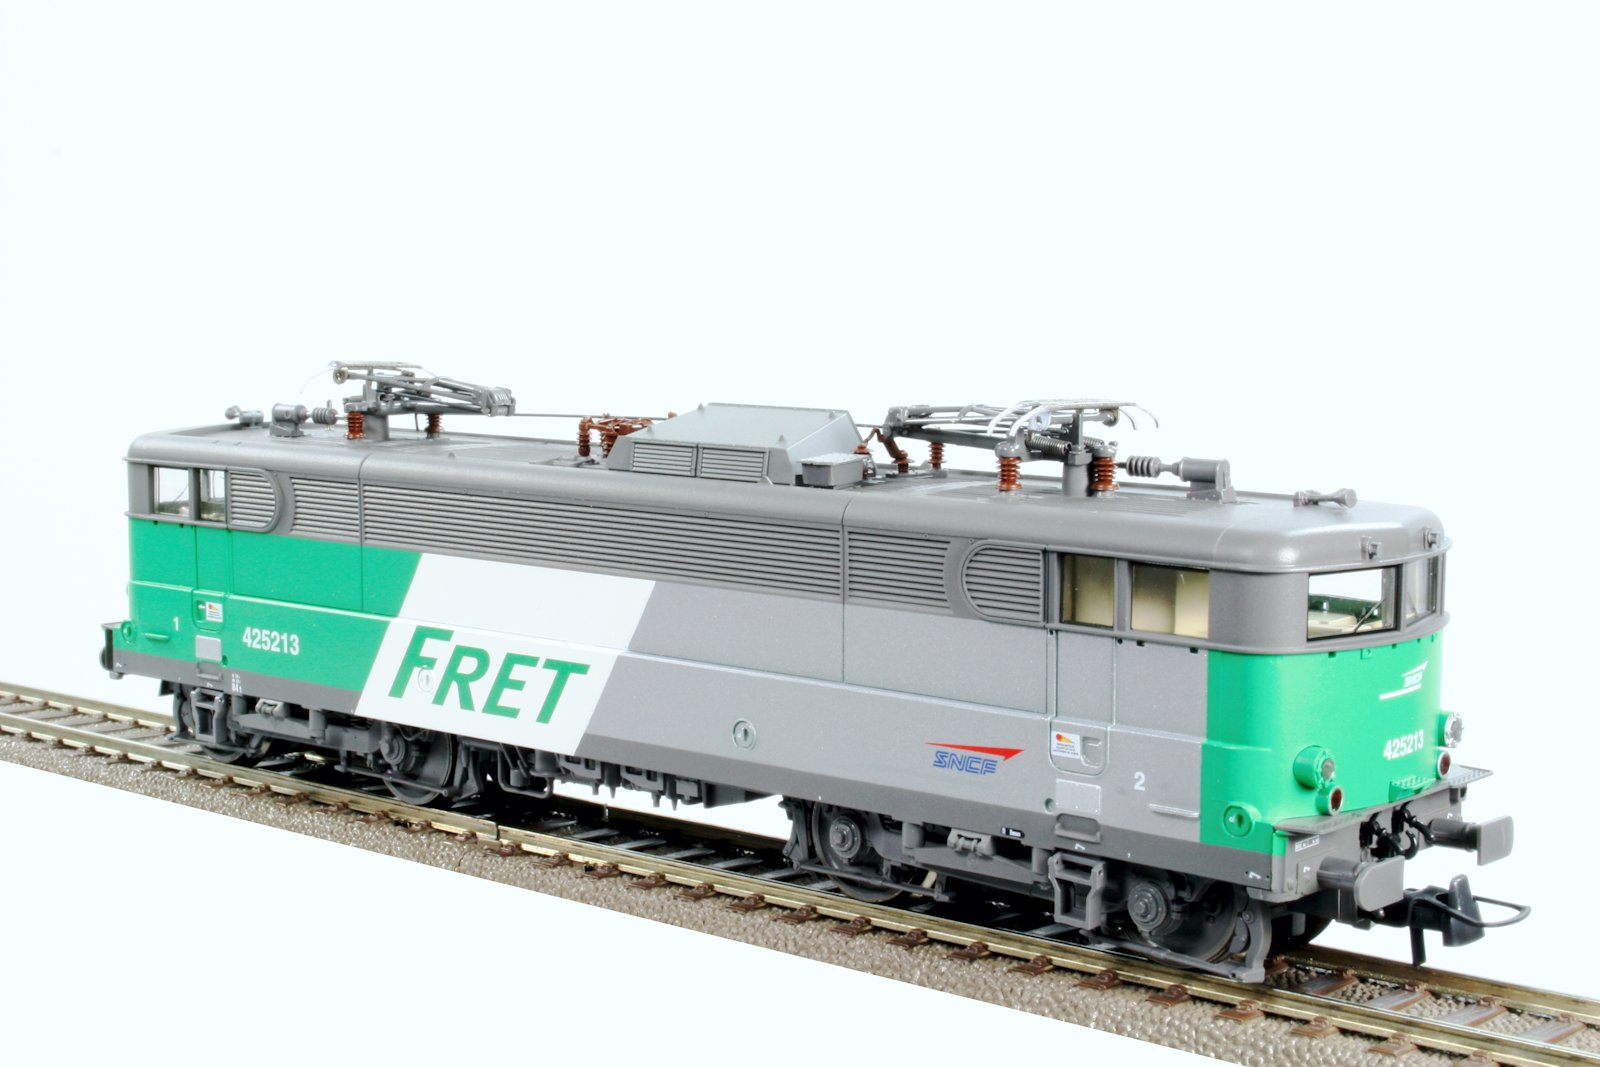 Eclairage Led Modelisme Locomotive électrique Bb425213 Fret Sncf Digital Sound